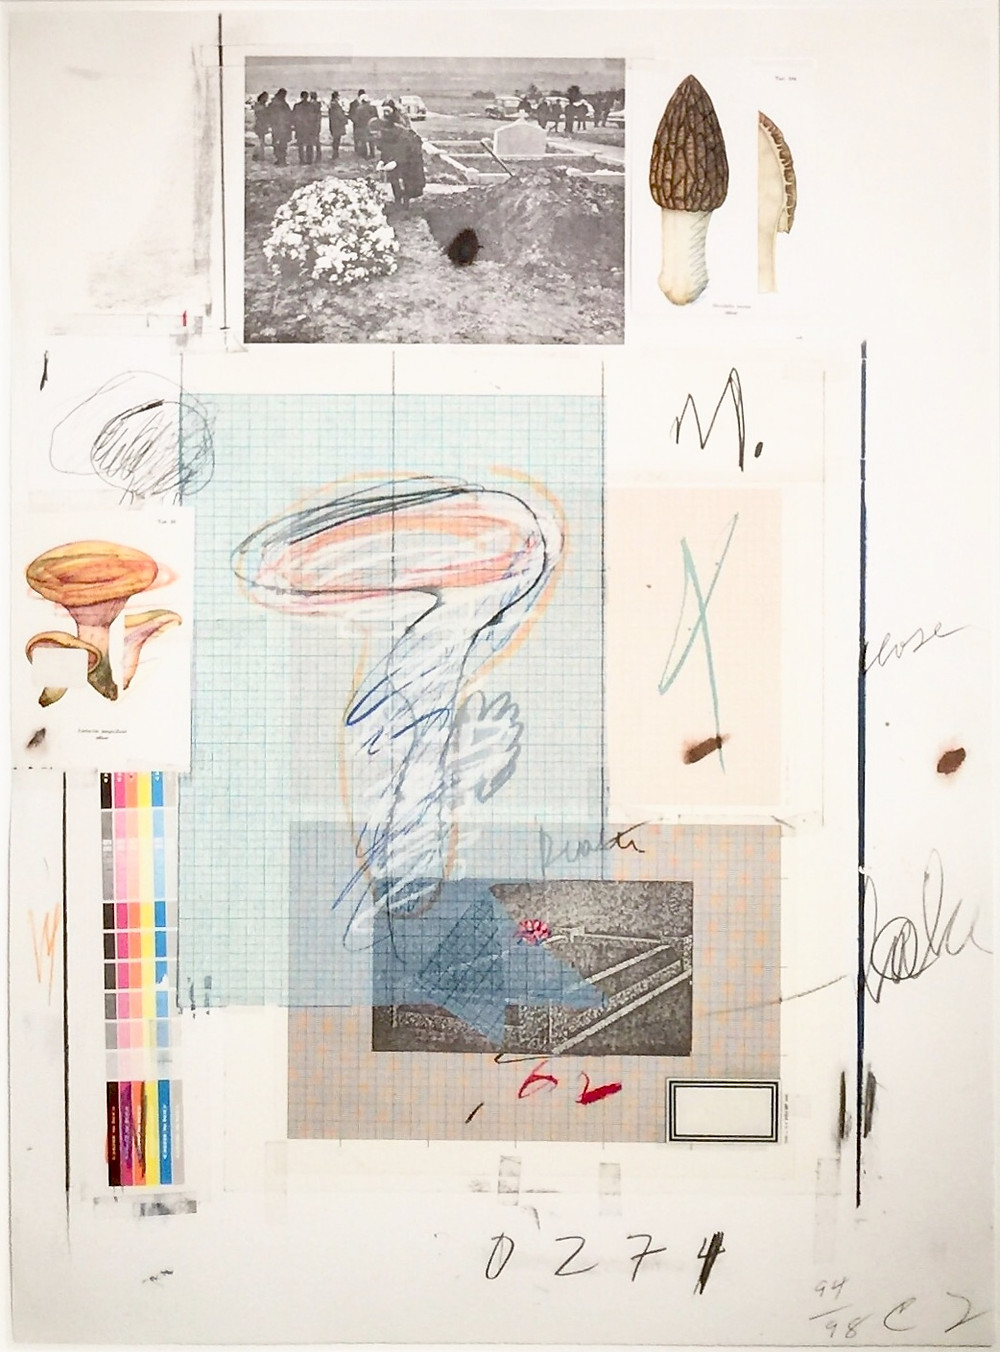 """Natural History Part I Mushrooms: No. VII, 1974; Lithograph, collotype in colors, collage, and hand-coloring on Rives Couronne paper; Numbered 94/98 and initialed C T in pencil lower right; Printer, © 1974, and VII stamps lower left; Published by Propyläen Verlag, Berlin; Catalog Raisonne: Bastian 48; Size - Sheet 30 x 22"""", Frame 38 x 30""""; Framed floated with an acid free mat, cream wood exterior frame, and plexiglass."""